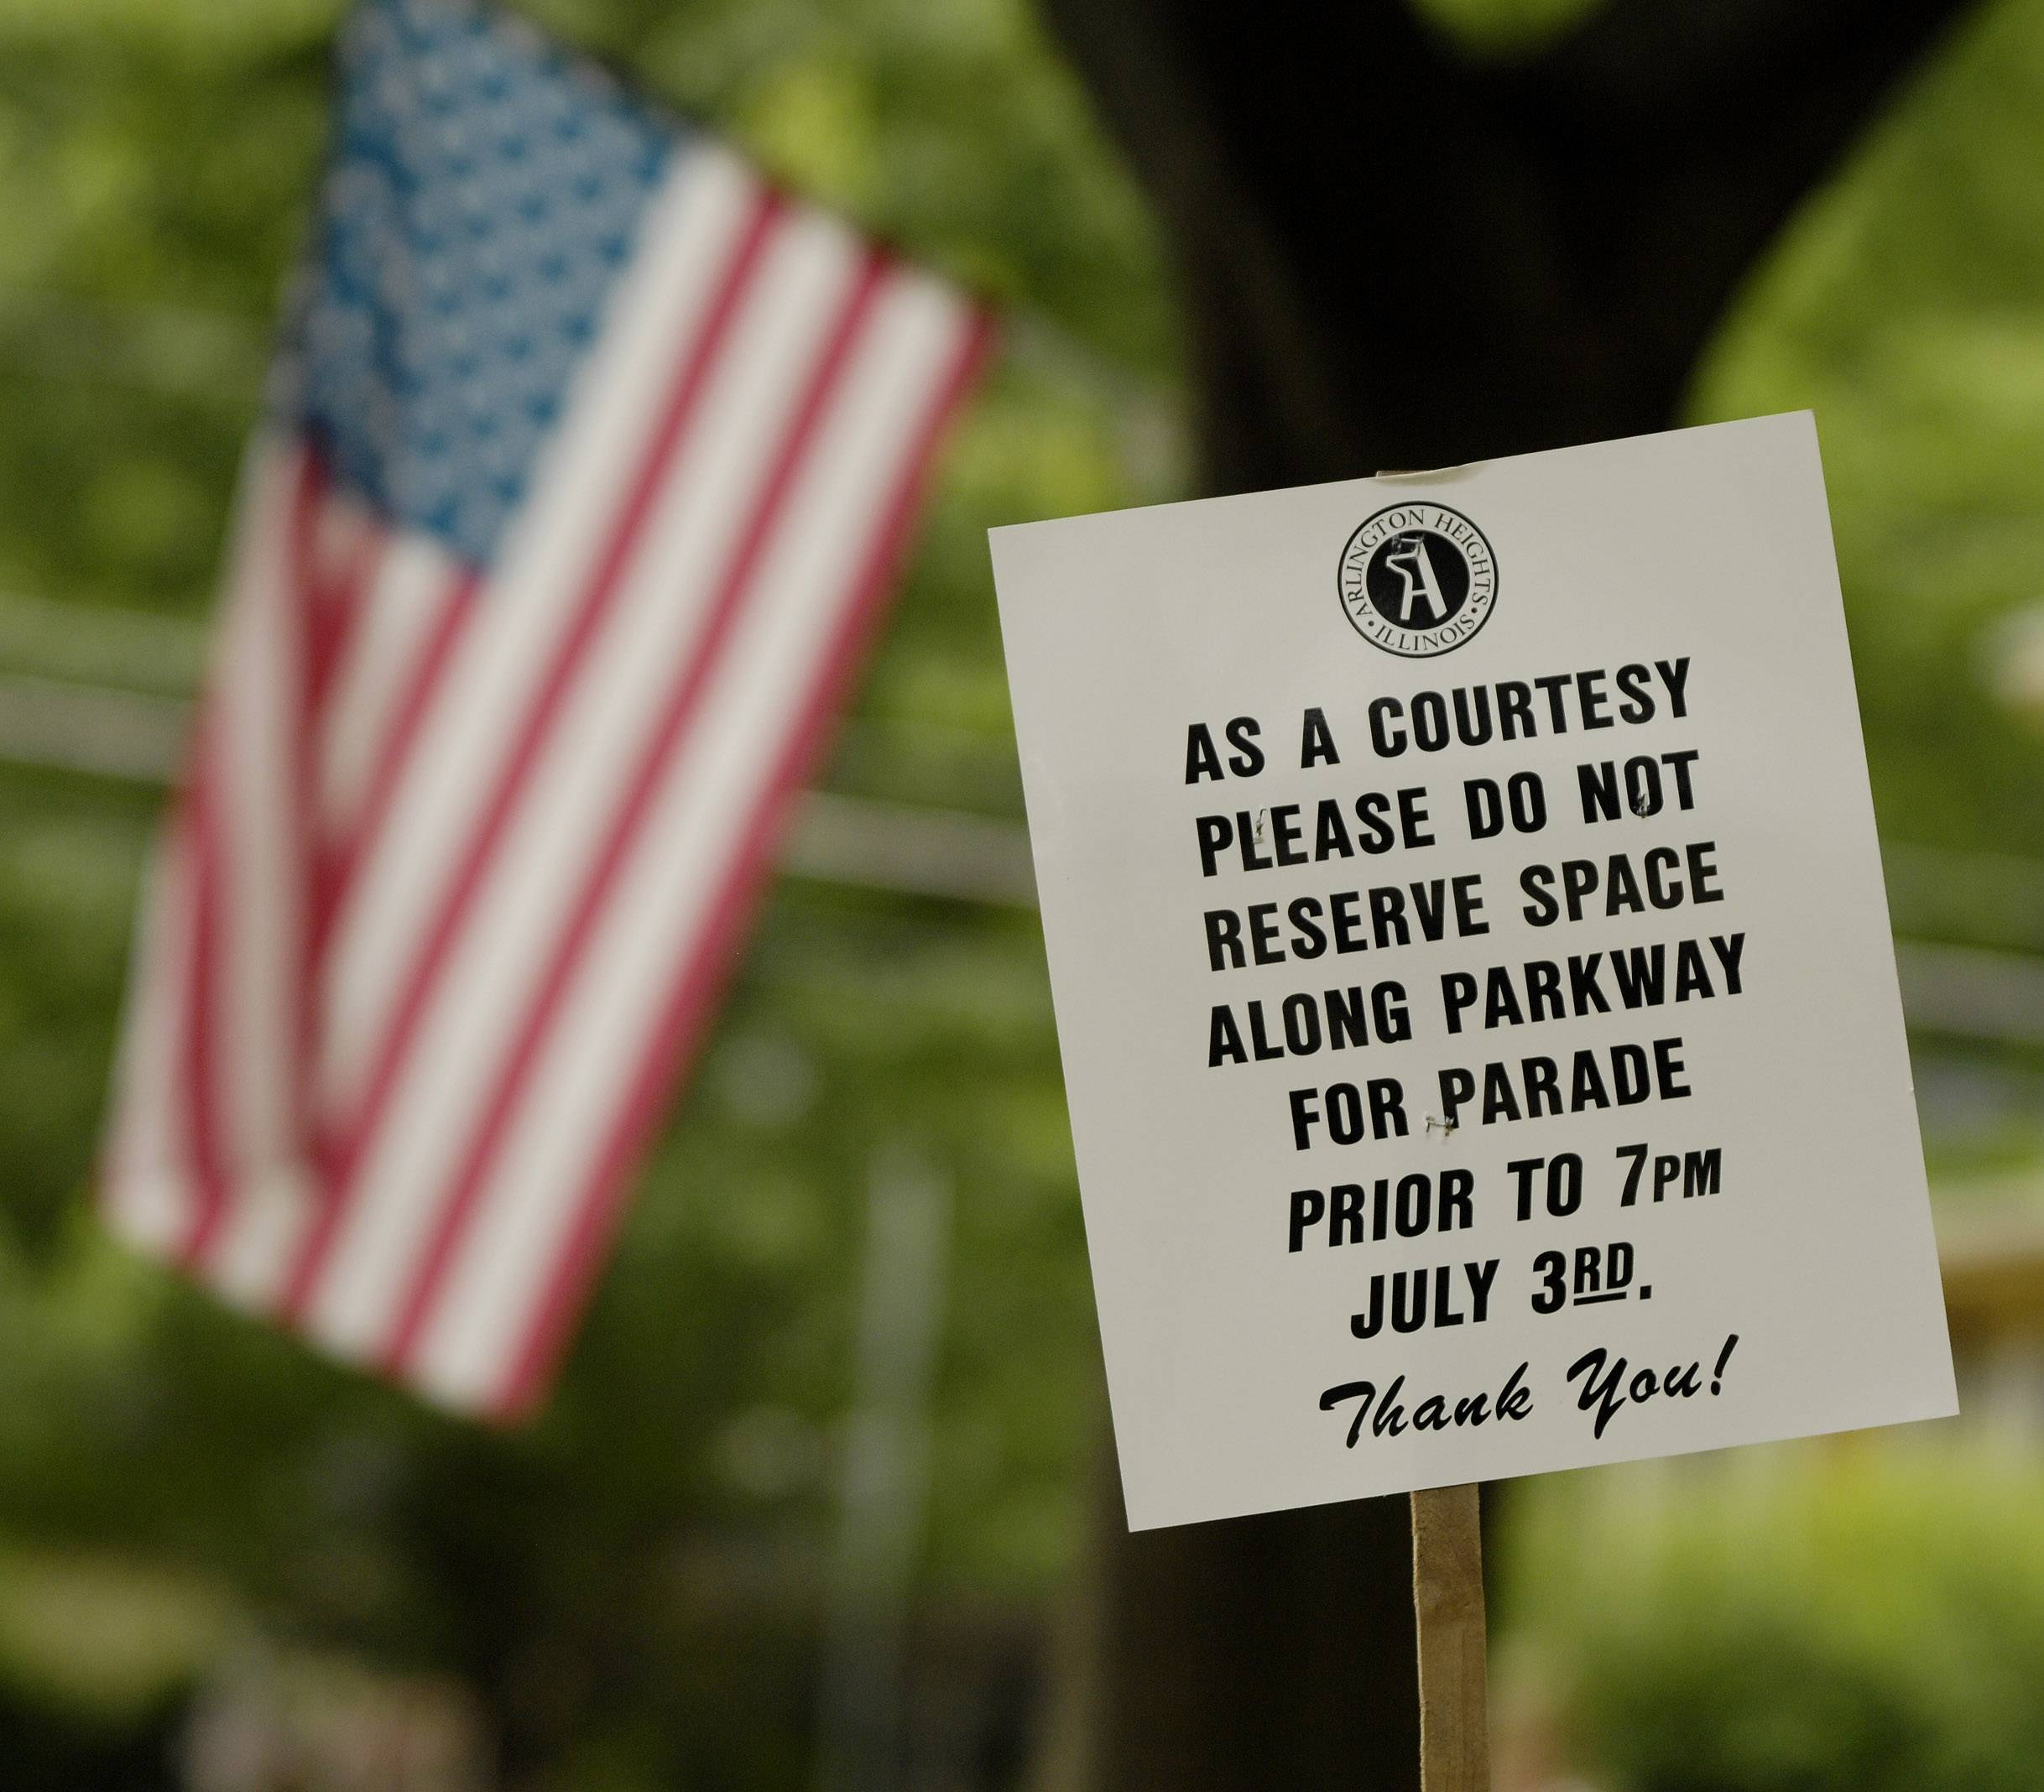 Signs remind paradegoers to wait until 7 p.m. July 3 to reserve a spot.